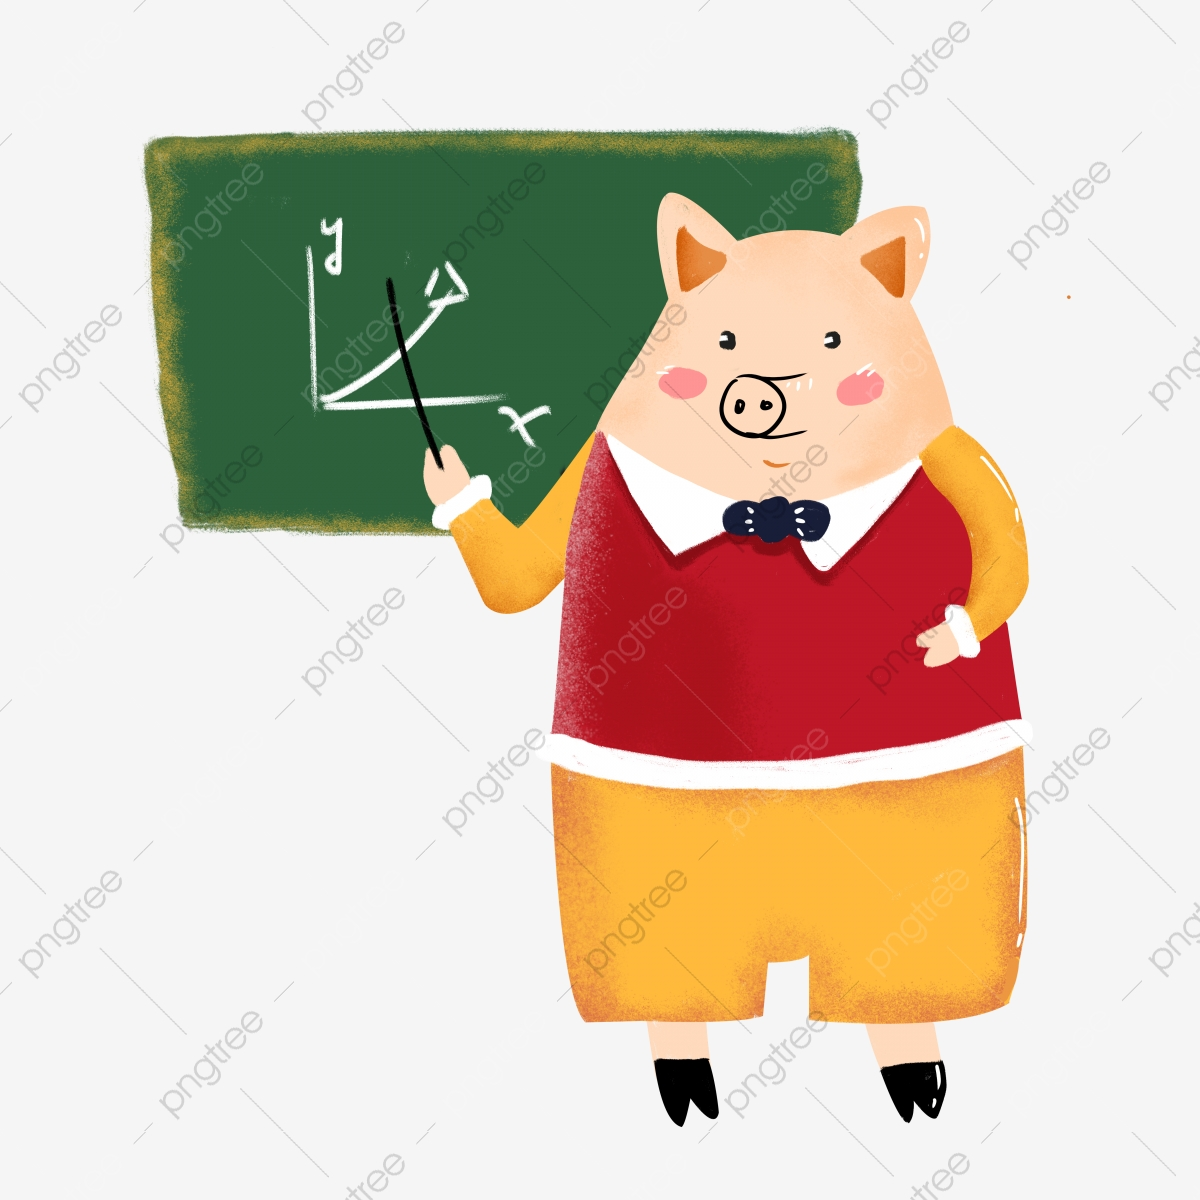 Pig clipart teacher. The gave a lecture